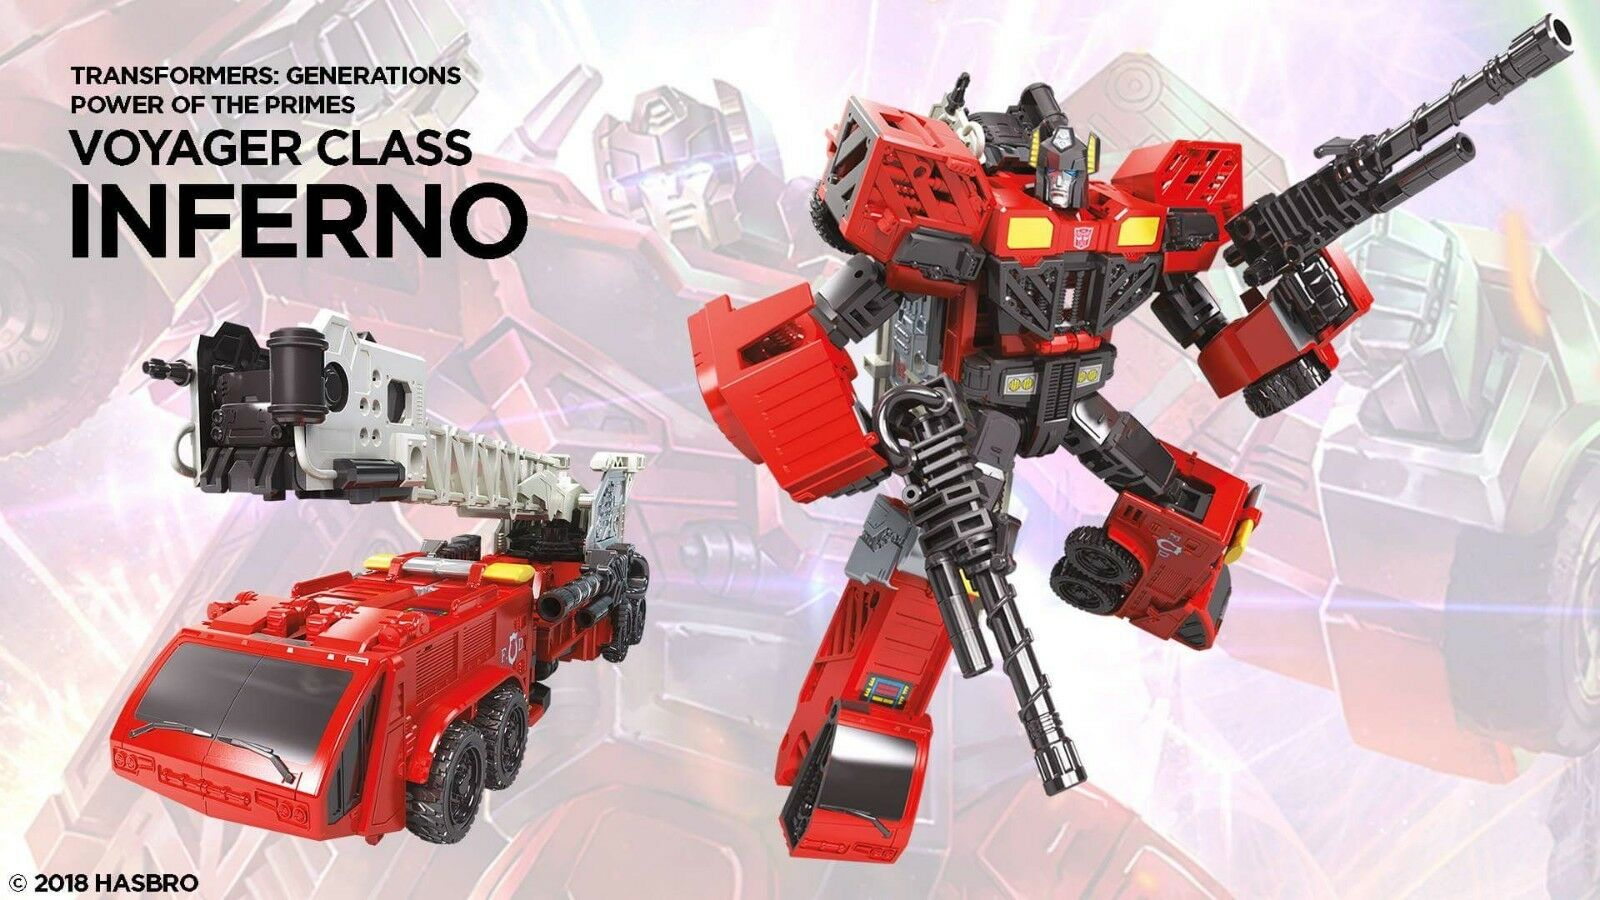 (P) HASBRO TRANSFORMERS Generations power of the primes VOYAGER inferno figure